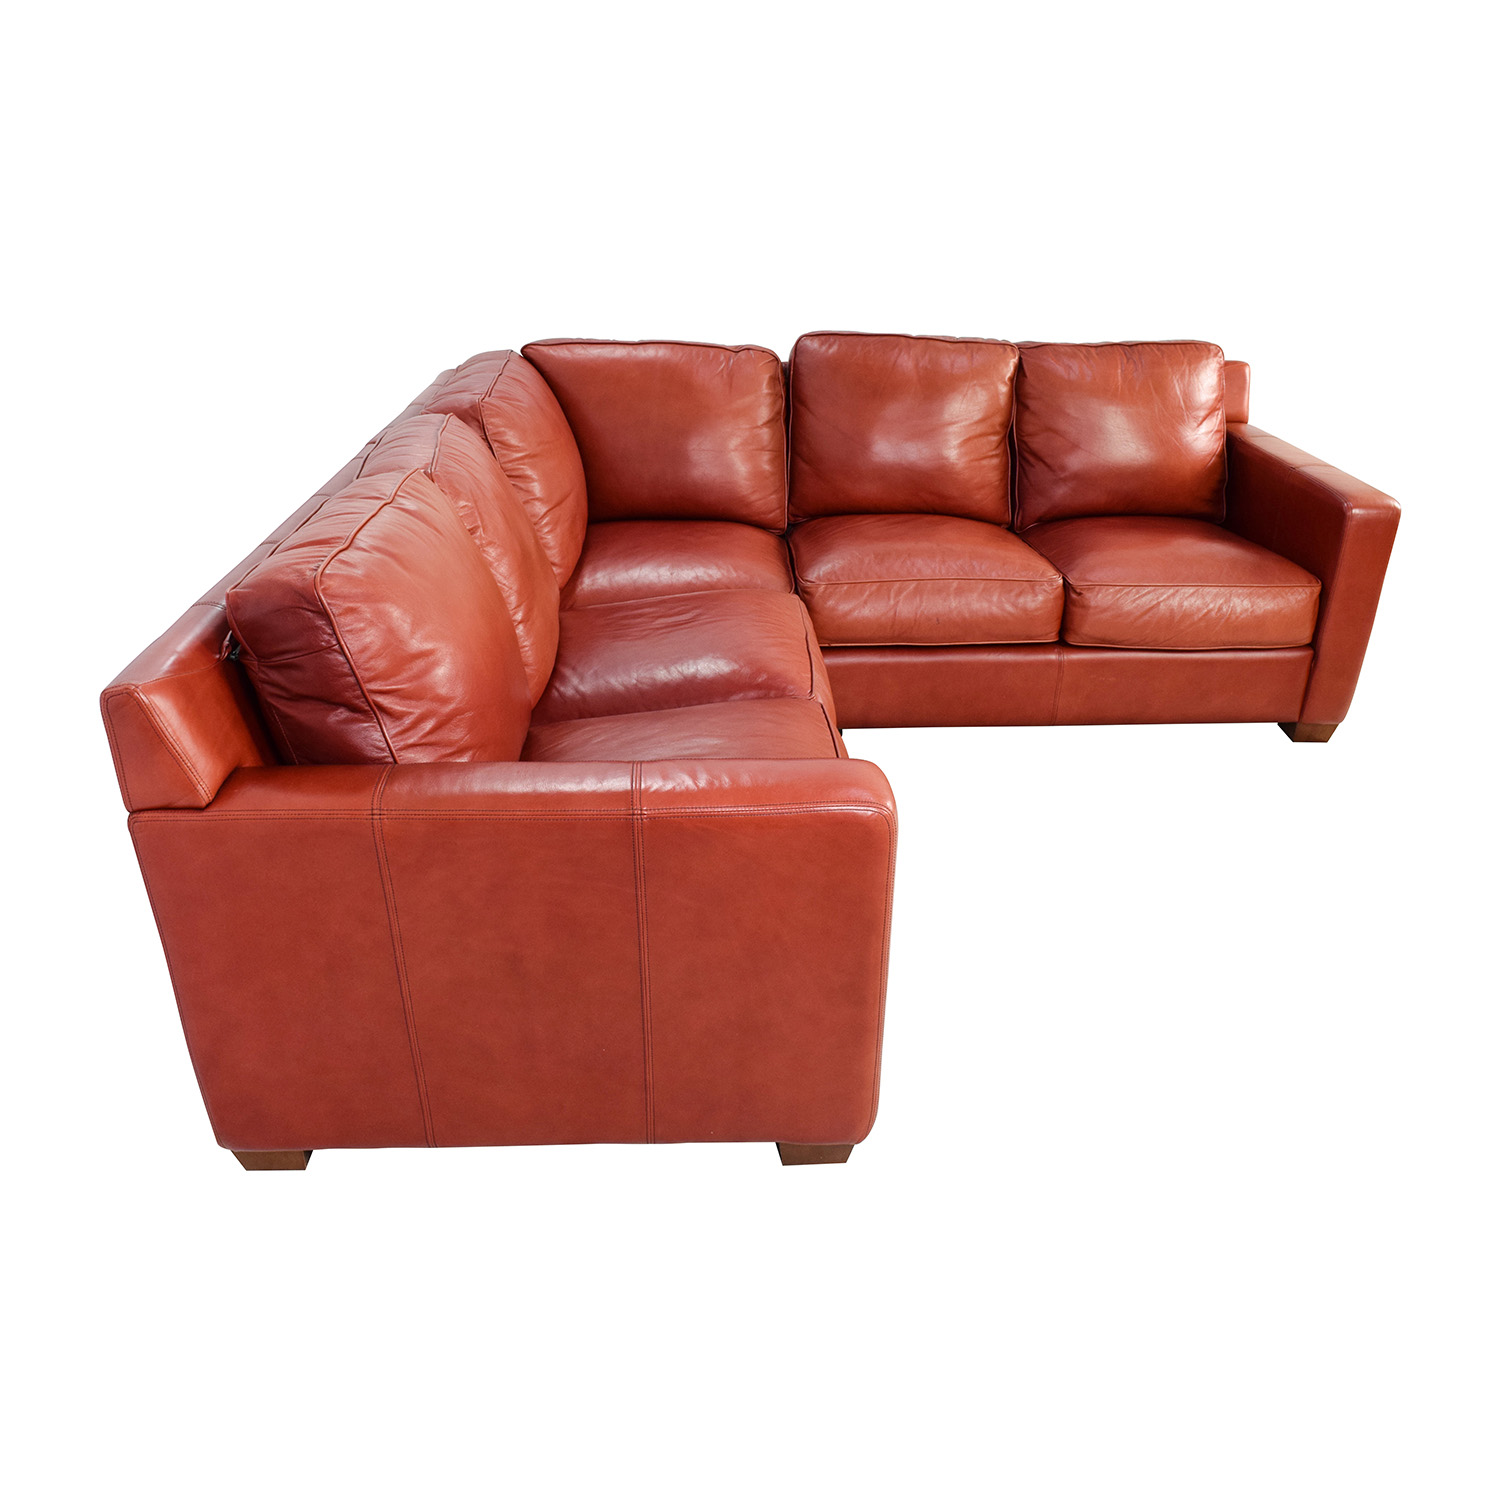 68 off thomasville thomasville red leather sectional for Small sectional sofa thomasville